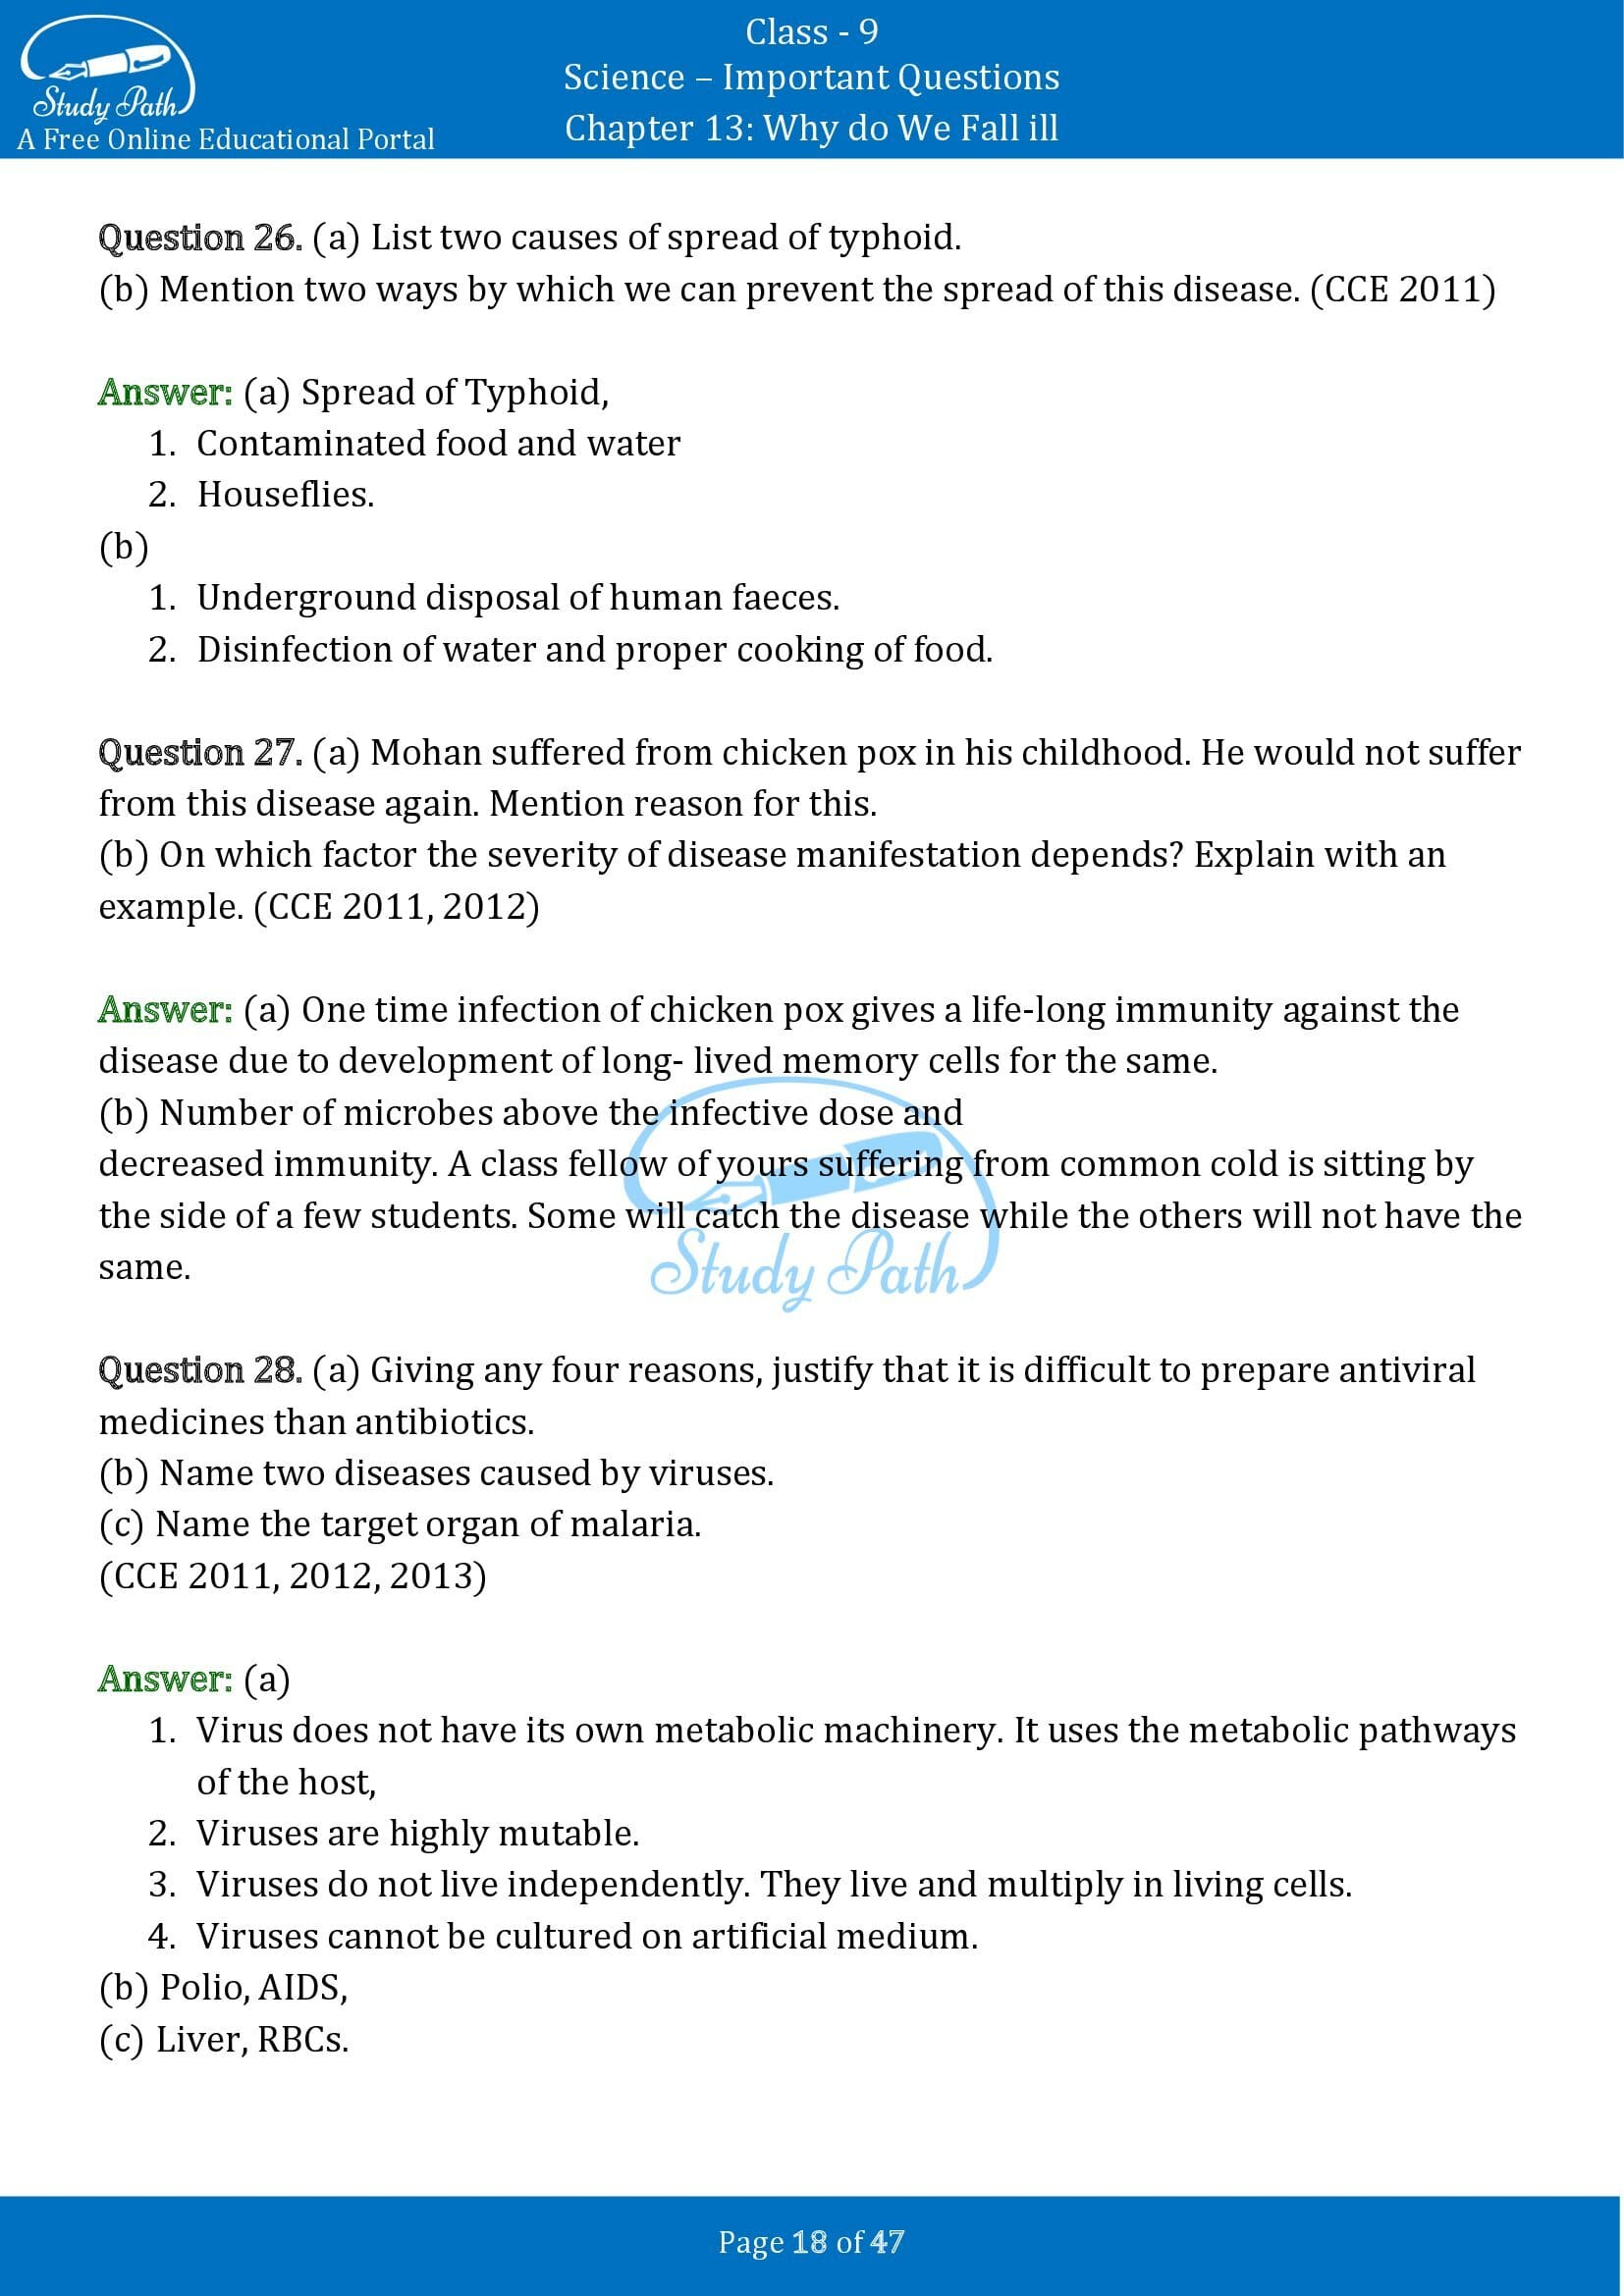 Important Questions for Class 9 Science Chapter 13 Why do We Fall ill 00018